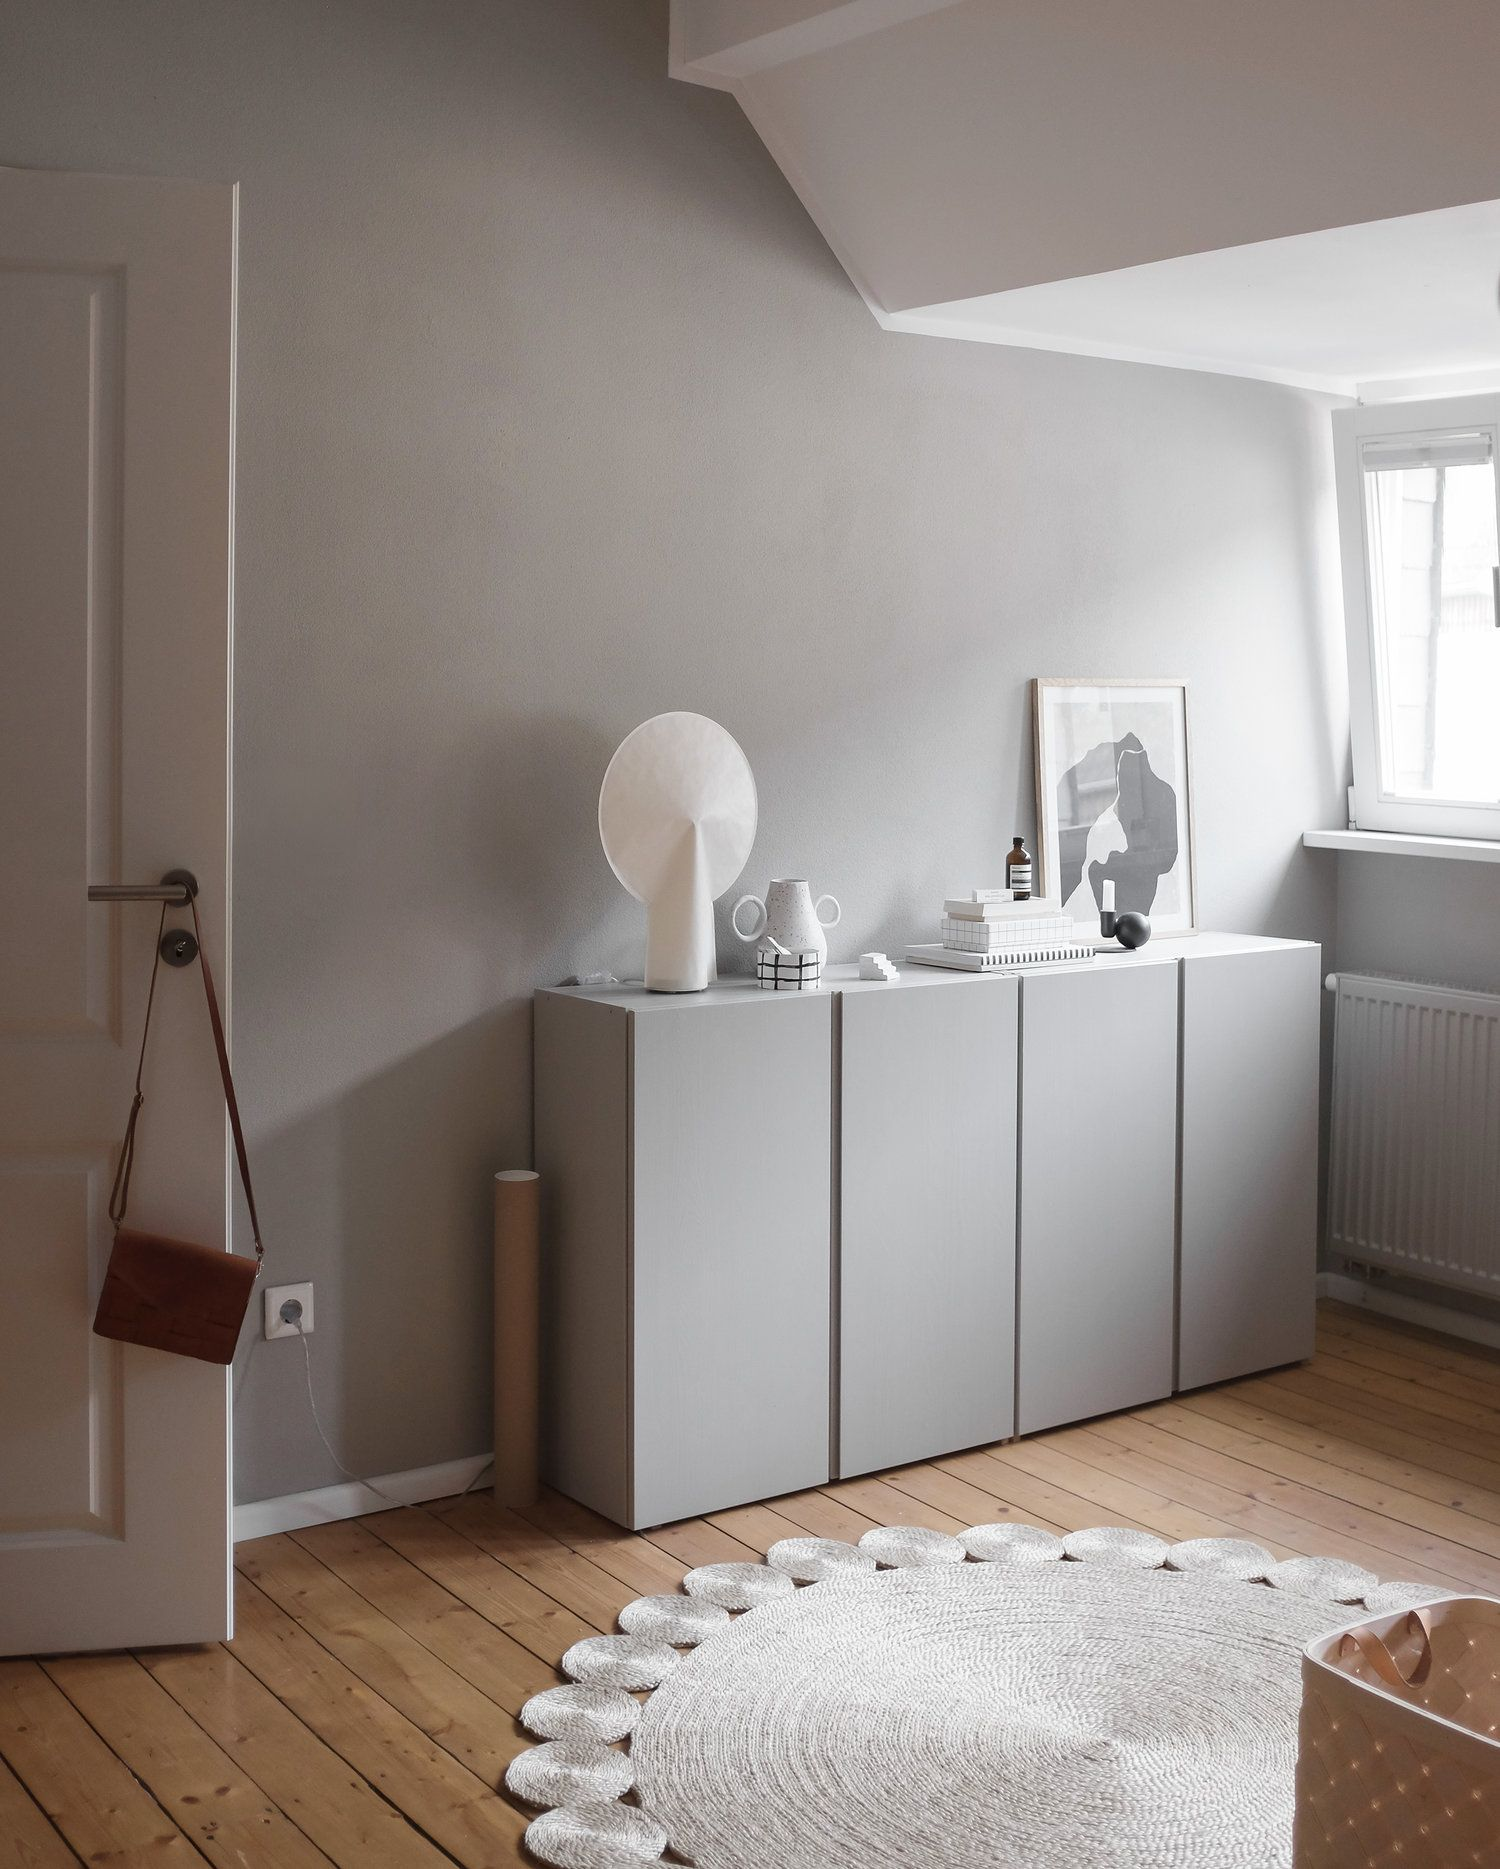 Tour The Hygge Home Of Swantje Hinrichsen Ikea Ivar Cabinet